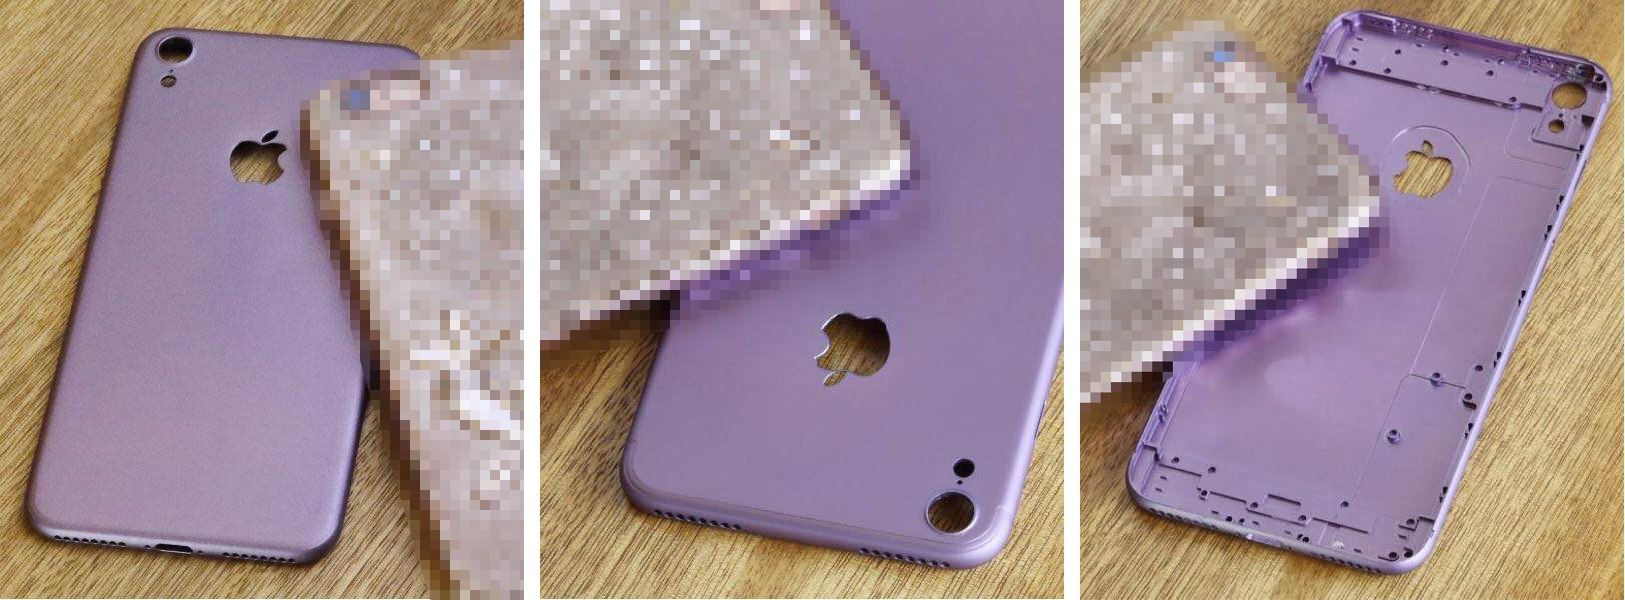 iPhone 7 case four speakers NowhereElse leak 001